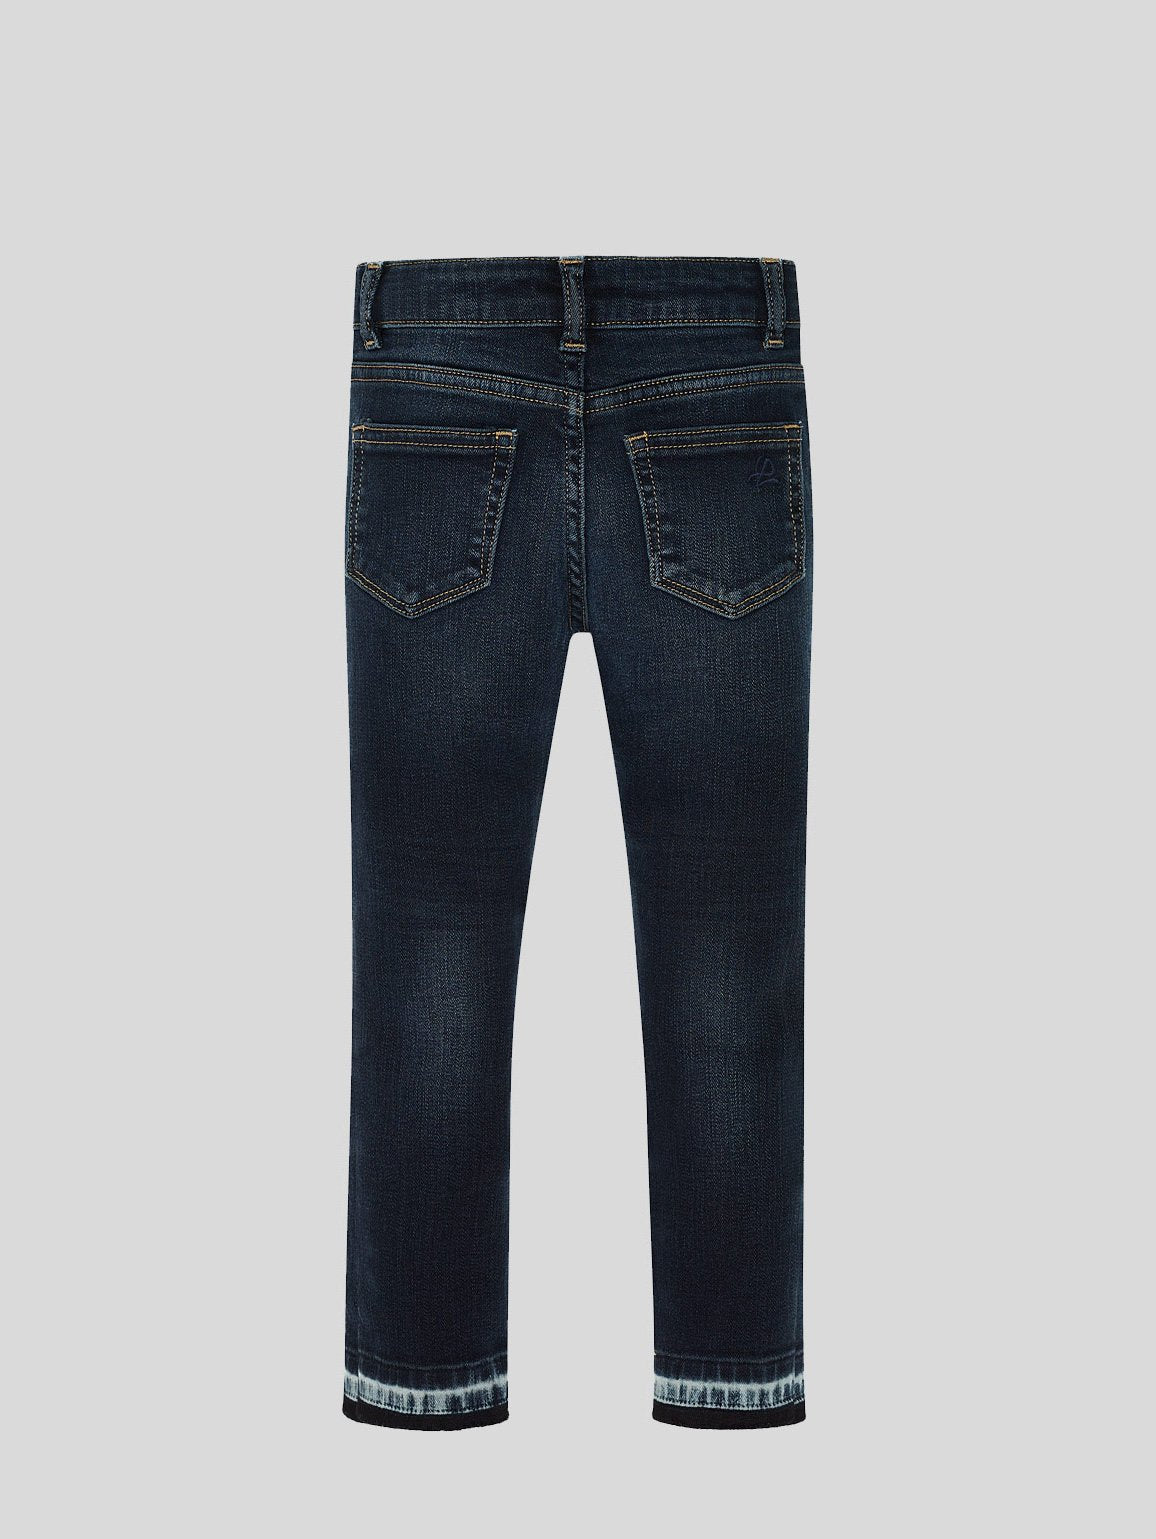 Girls - Slashed Knee Dark Wash Denim - Chloe/G Skinny Grizzly - DL1961